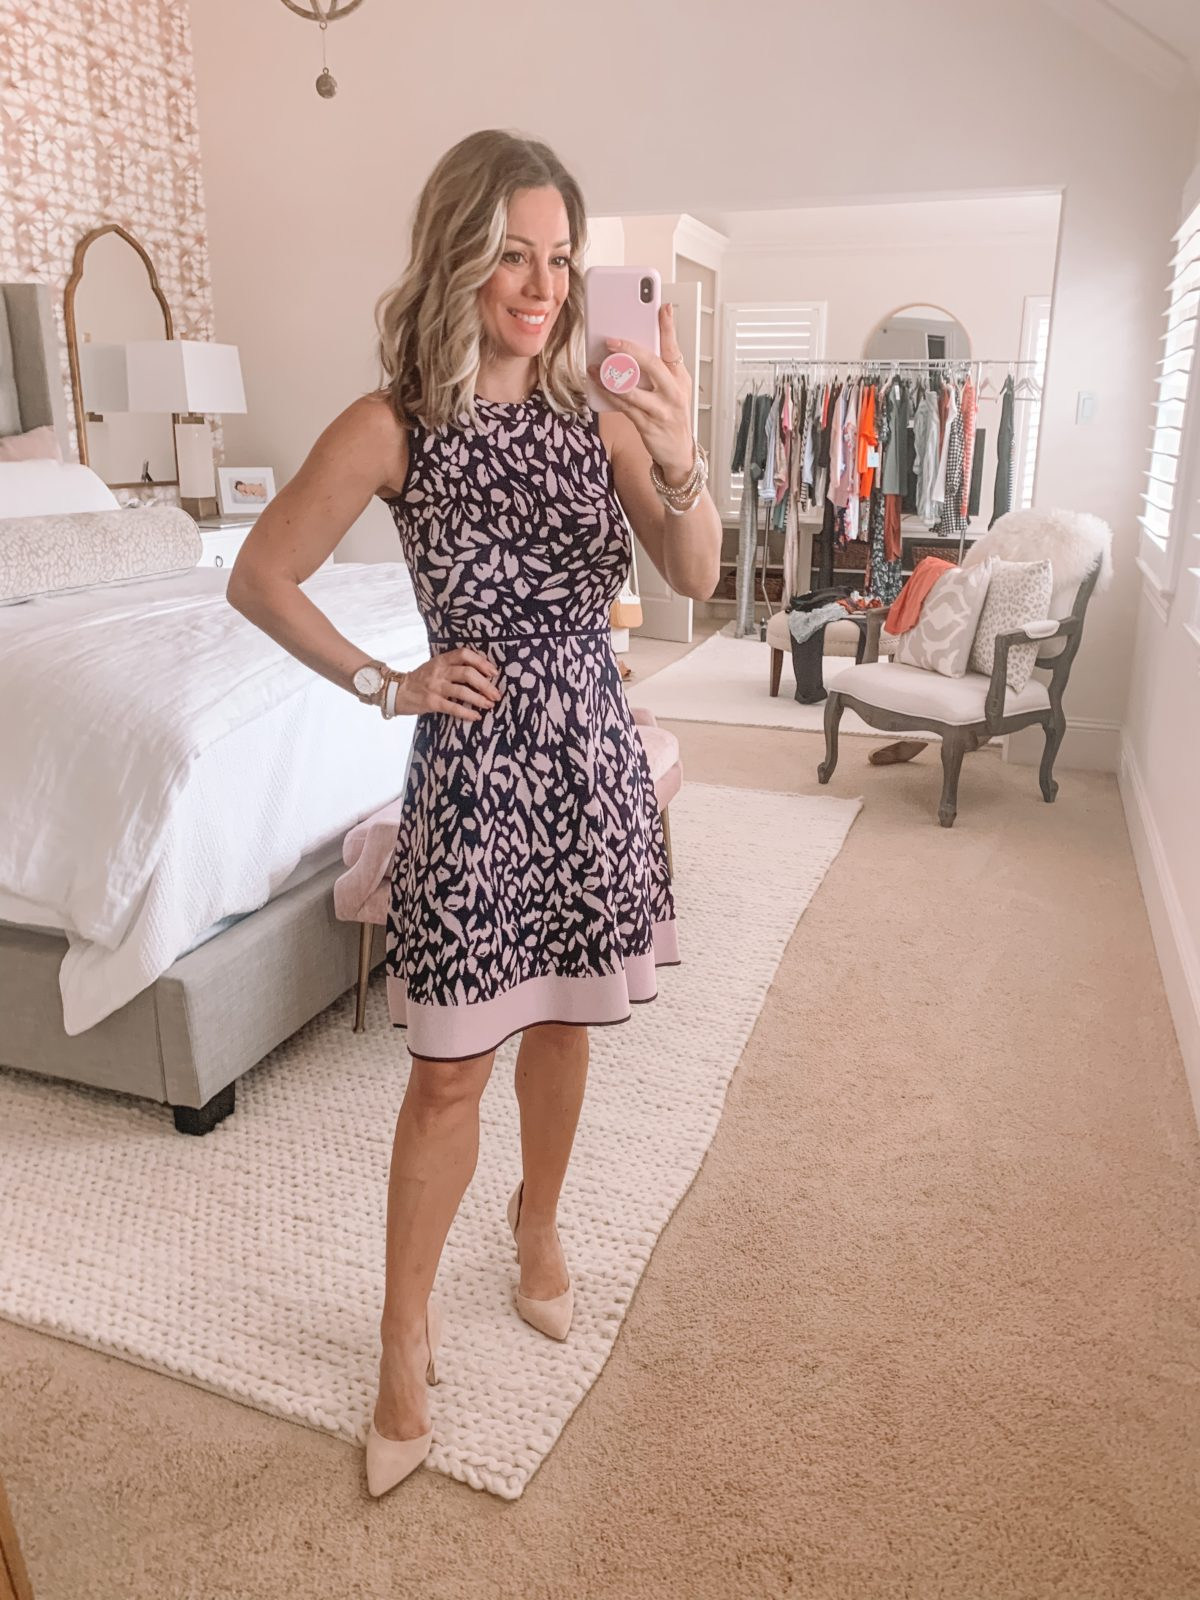 Dressing Room Finds Nordstrom and LOFT, Fit and Flare Sweater Dress, Heels